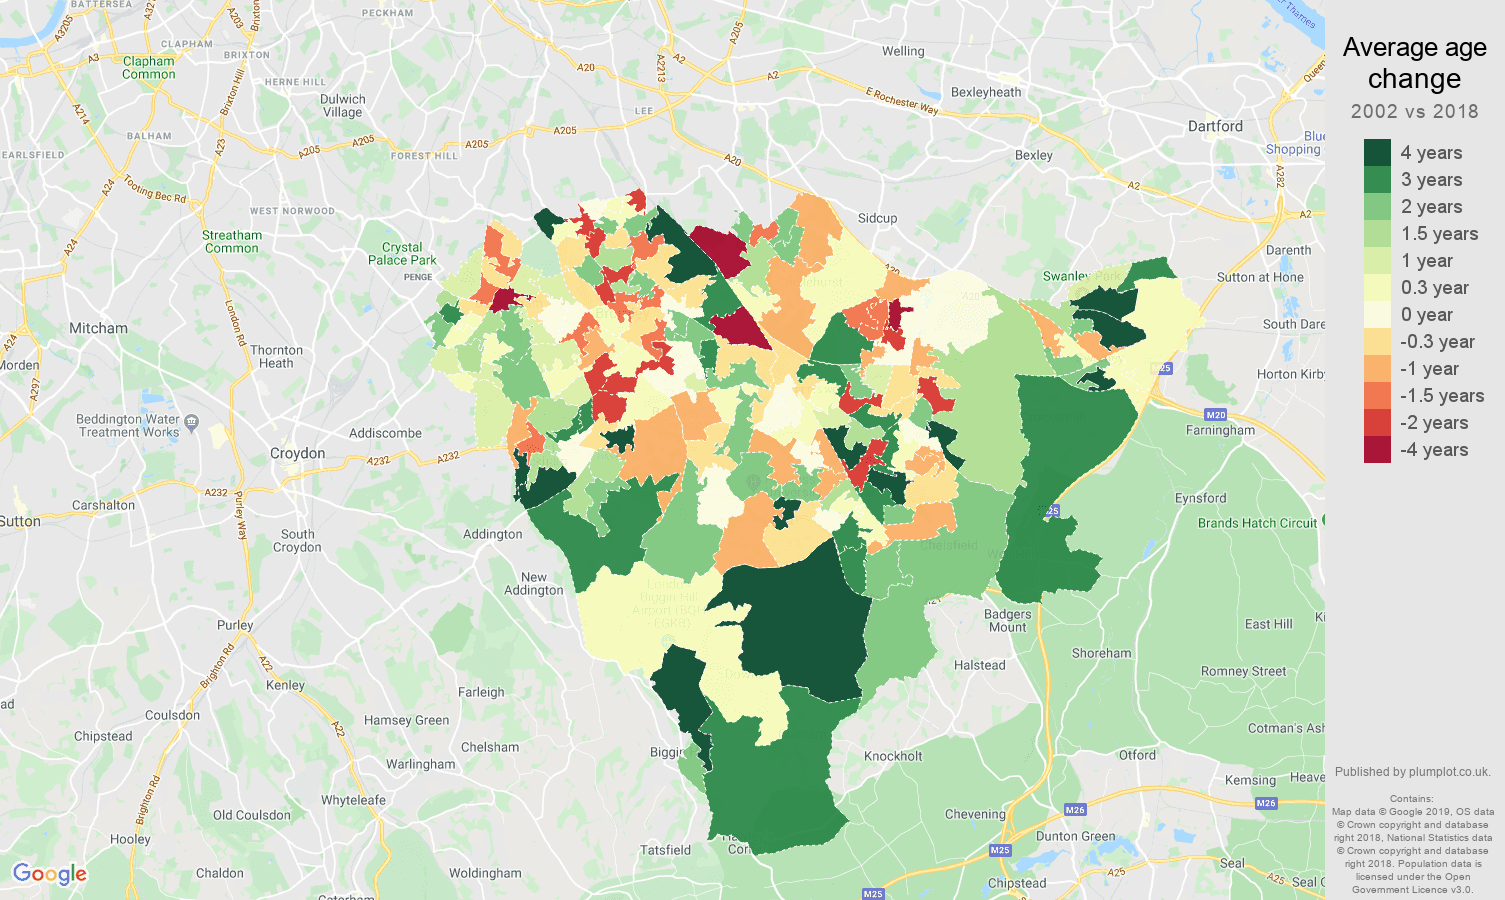 Bromley average age change map